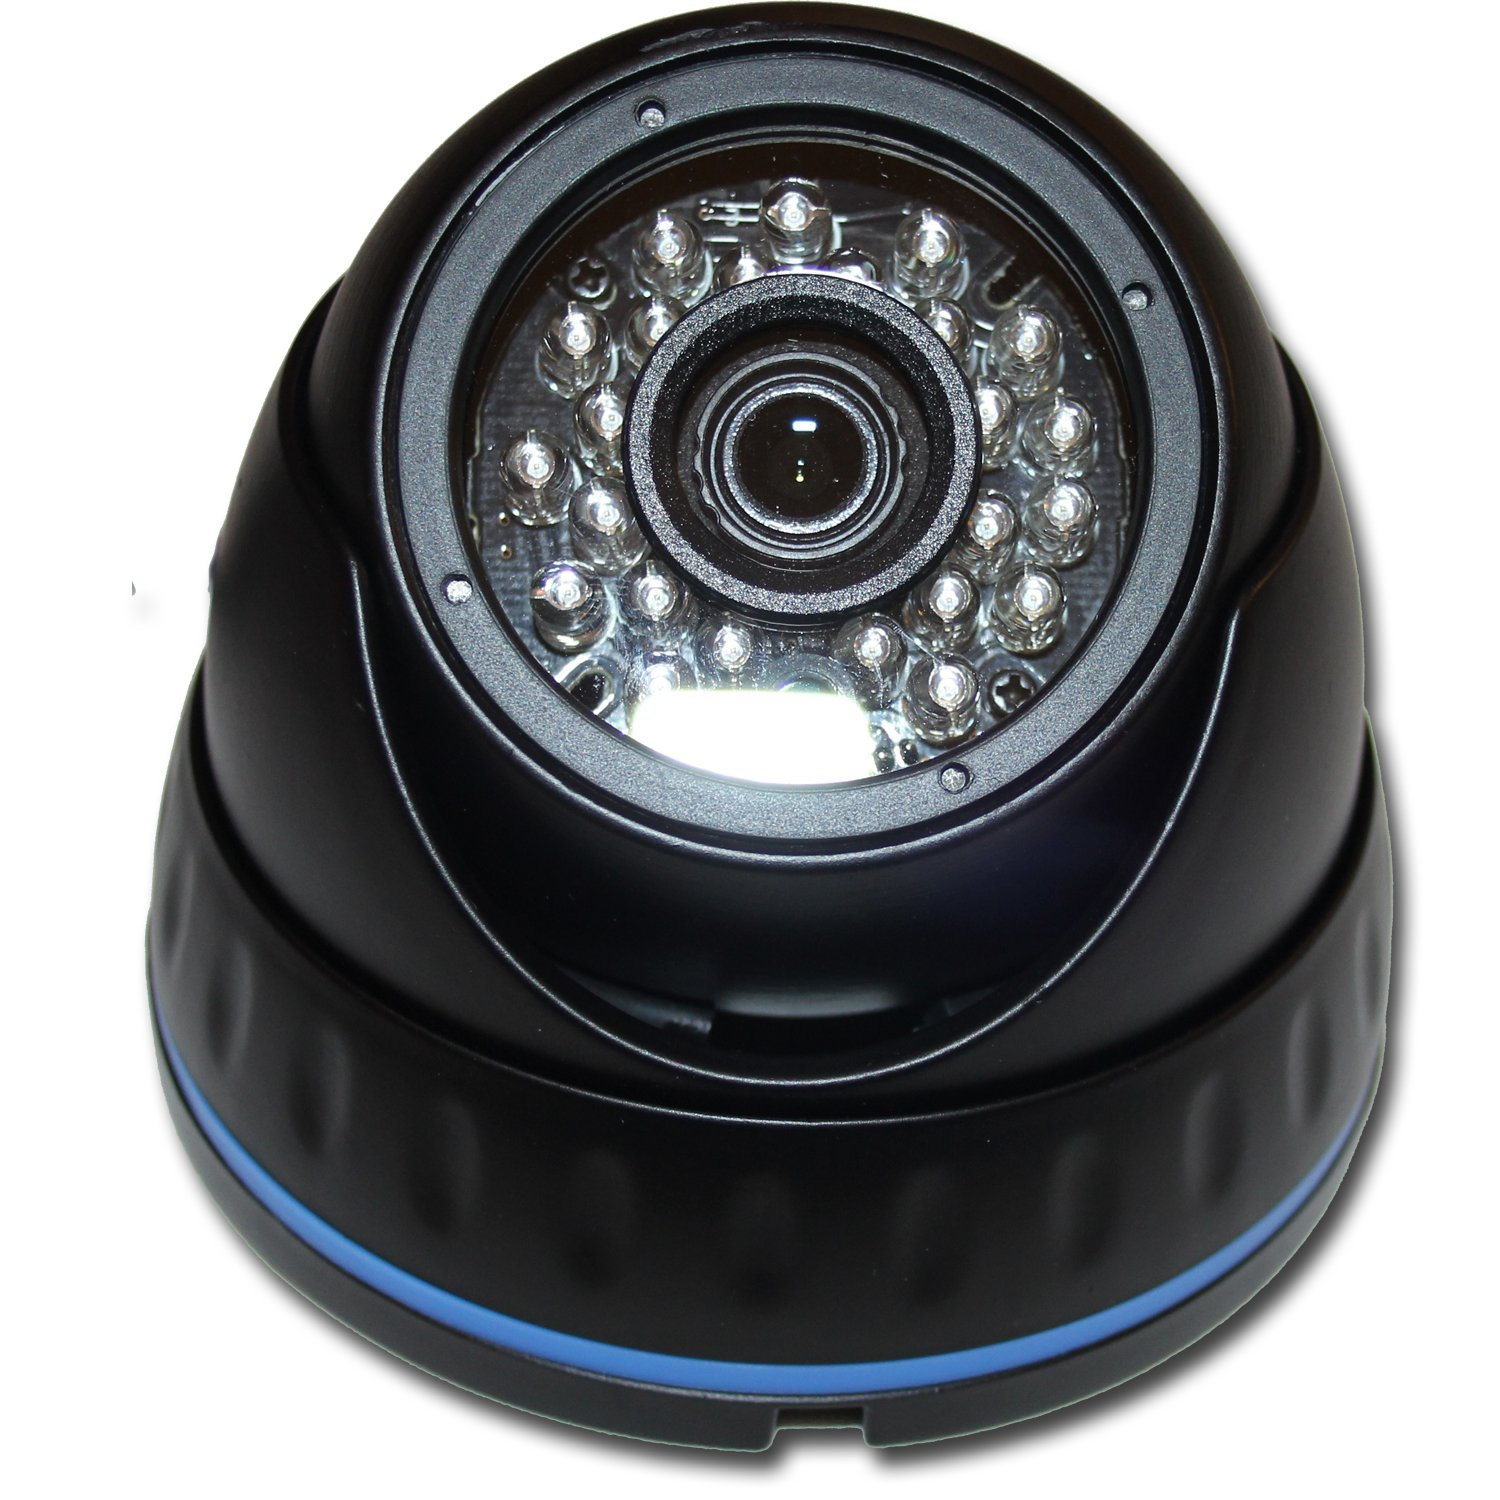 1080P HD-TVI HD-CVI AHD 960H IR Black DOME SECURITY SURVEILLANCE CAMERA Weatherproof Infrared [並行輸入品] B01KBRC310